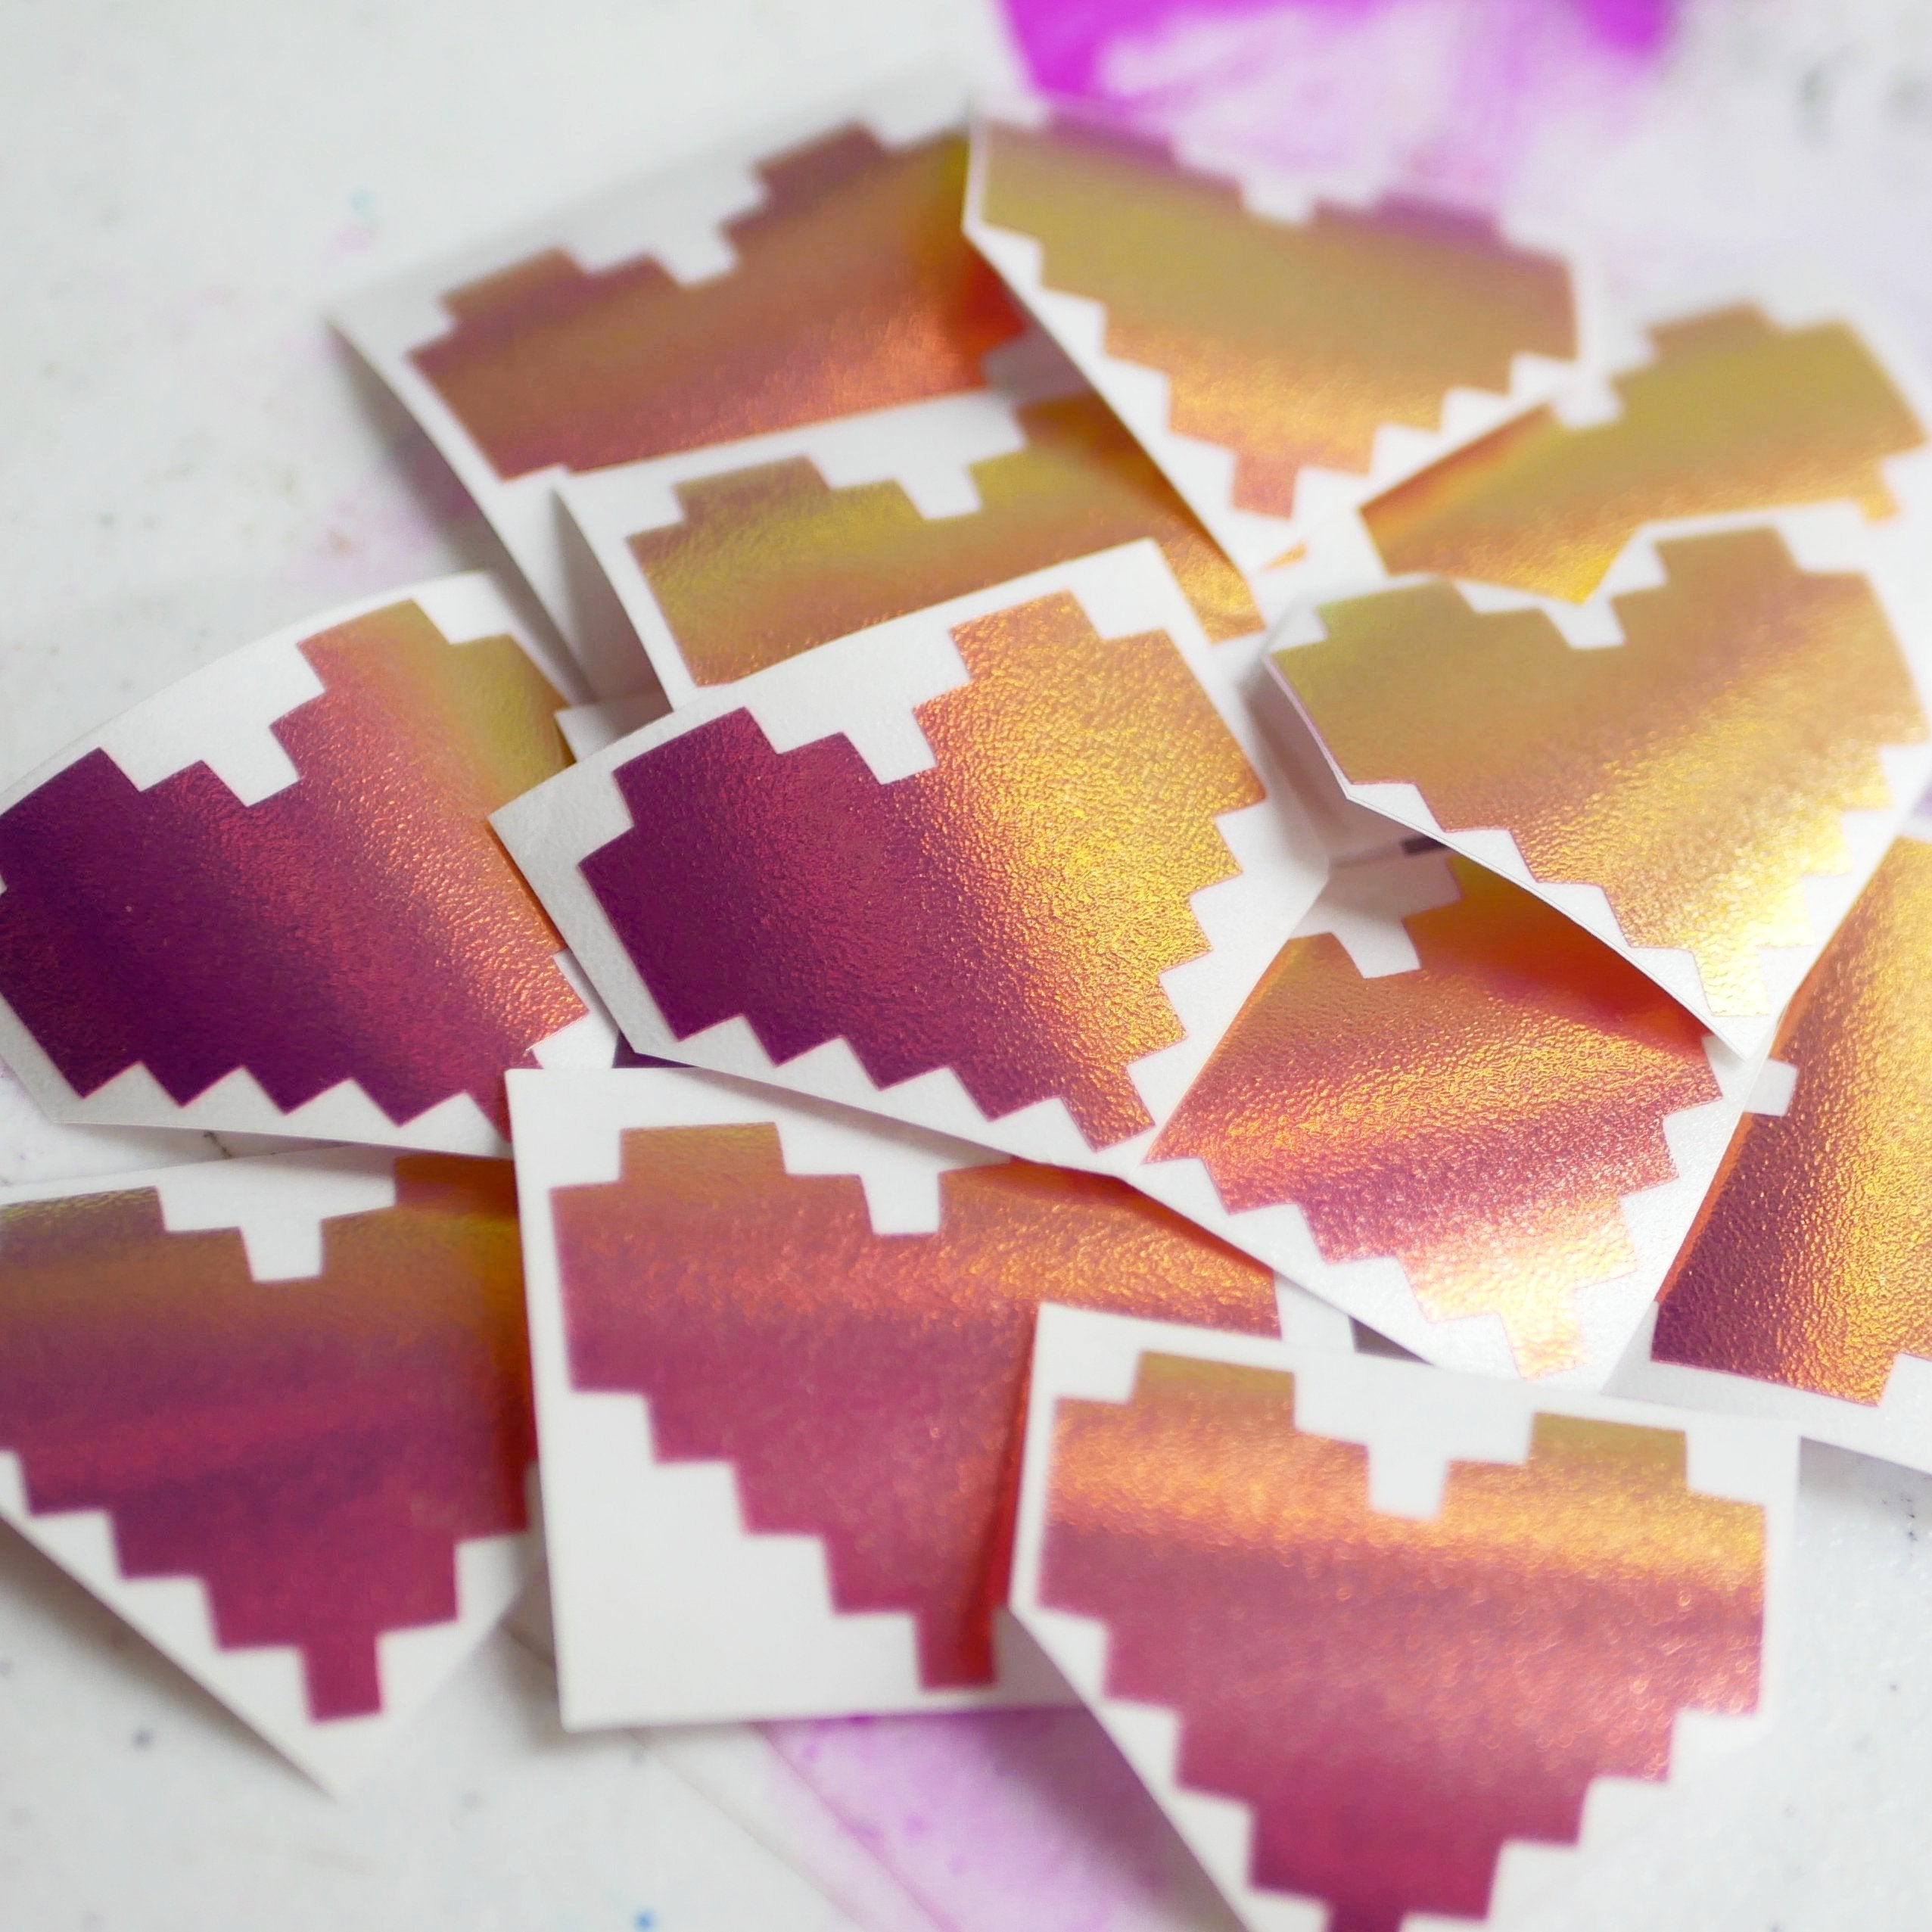 Limited Edition Pixel Heart Vinyl Decal (only 16 left)